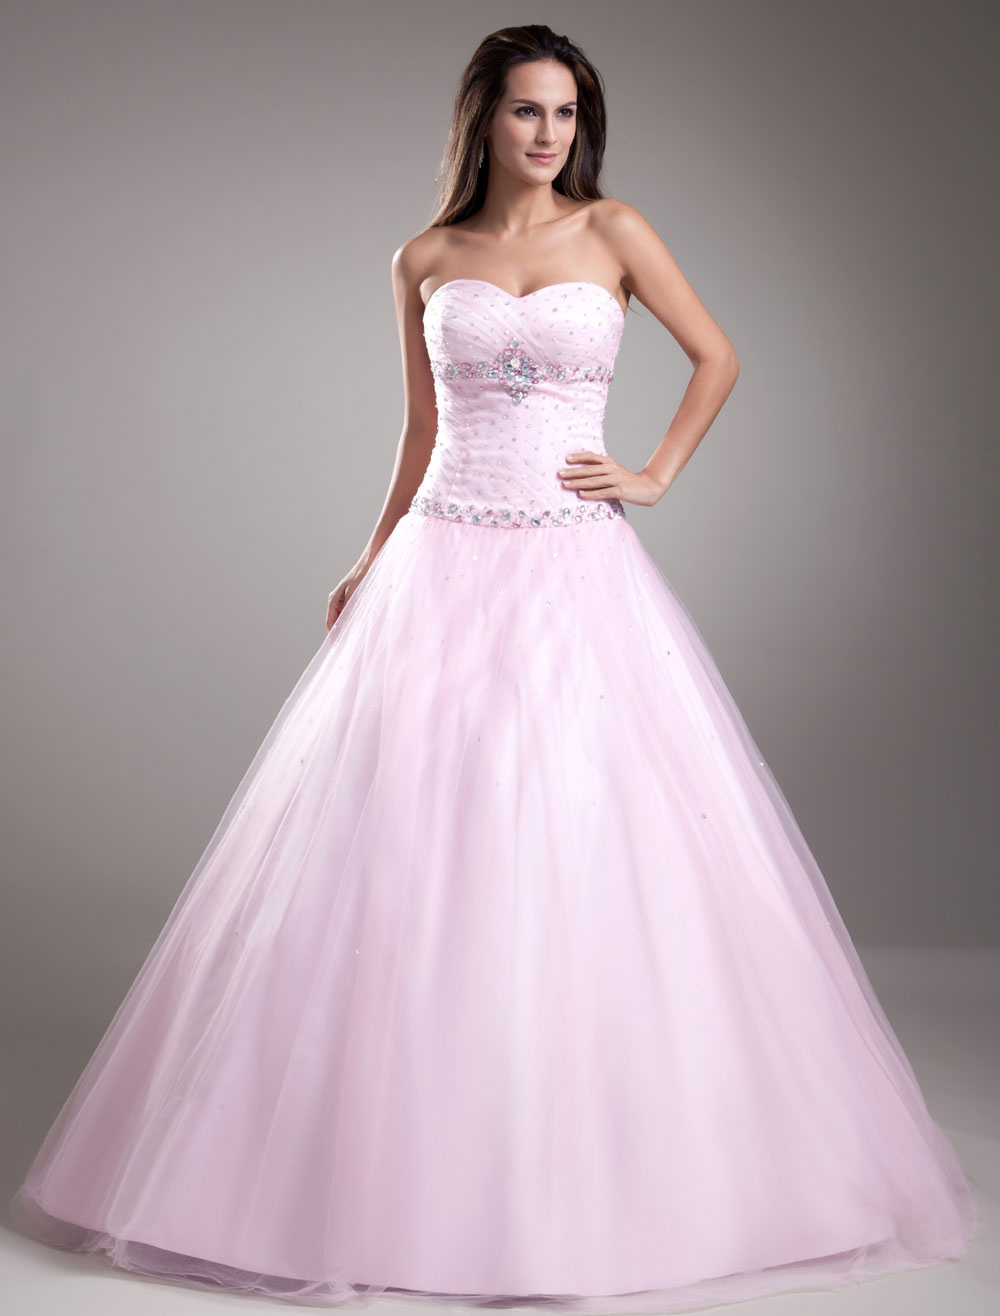 Sweet Pink Beading Tulle Sweetheart Neck Women's Ball Gown